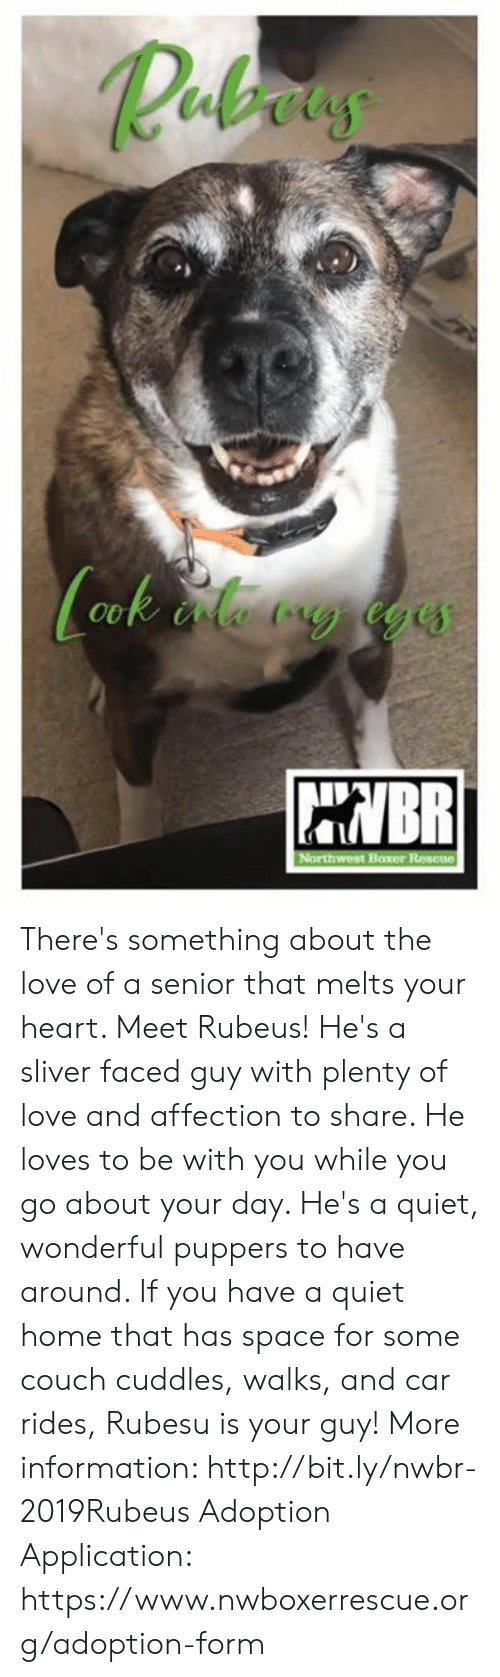 Love, Memes, and Boxer: Rebaus  HNBR  Northwest Boxer Rescue There's something about the love of a senior that melts your heart. Meet Rubeus! He's a sliver faced guy with plenty of love and affection to share. He loves to be with you while you go about your day. He's a quiet, wonderful puppers to have around. If you have a quiet home that has space for some couch cuddles, walks, and car rides, Rubesu is your guy!   More information: http://bit.ly/nwbr-2019Rubeus  Adoption Application: https://www.nwboxerrescue.org/adoption-form